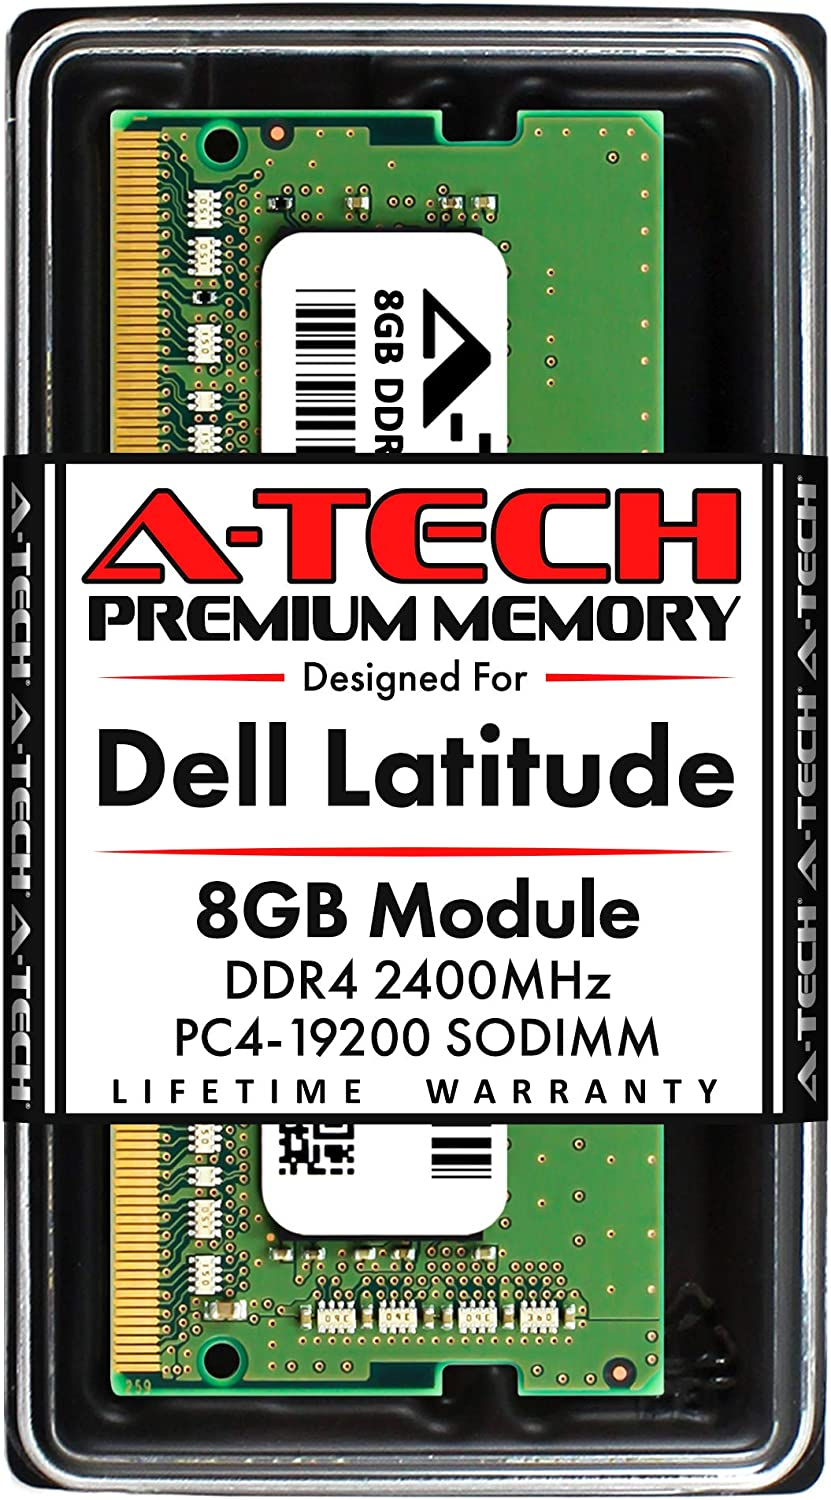 A-Tech 8GB RAM for Dell Latitude 5580, 5488, 5480 | DDR4 2400MHz SODIMM PC4-19200 Laptop Memory Upgrade Module